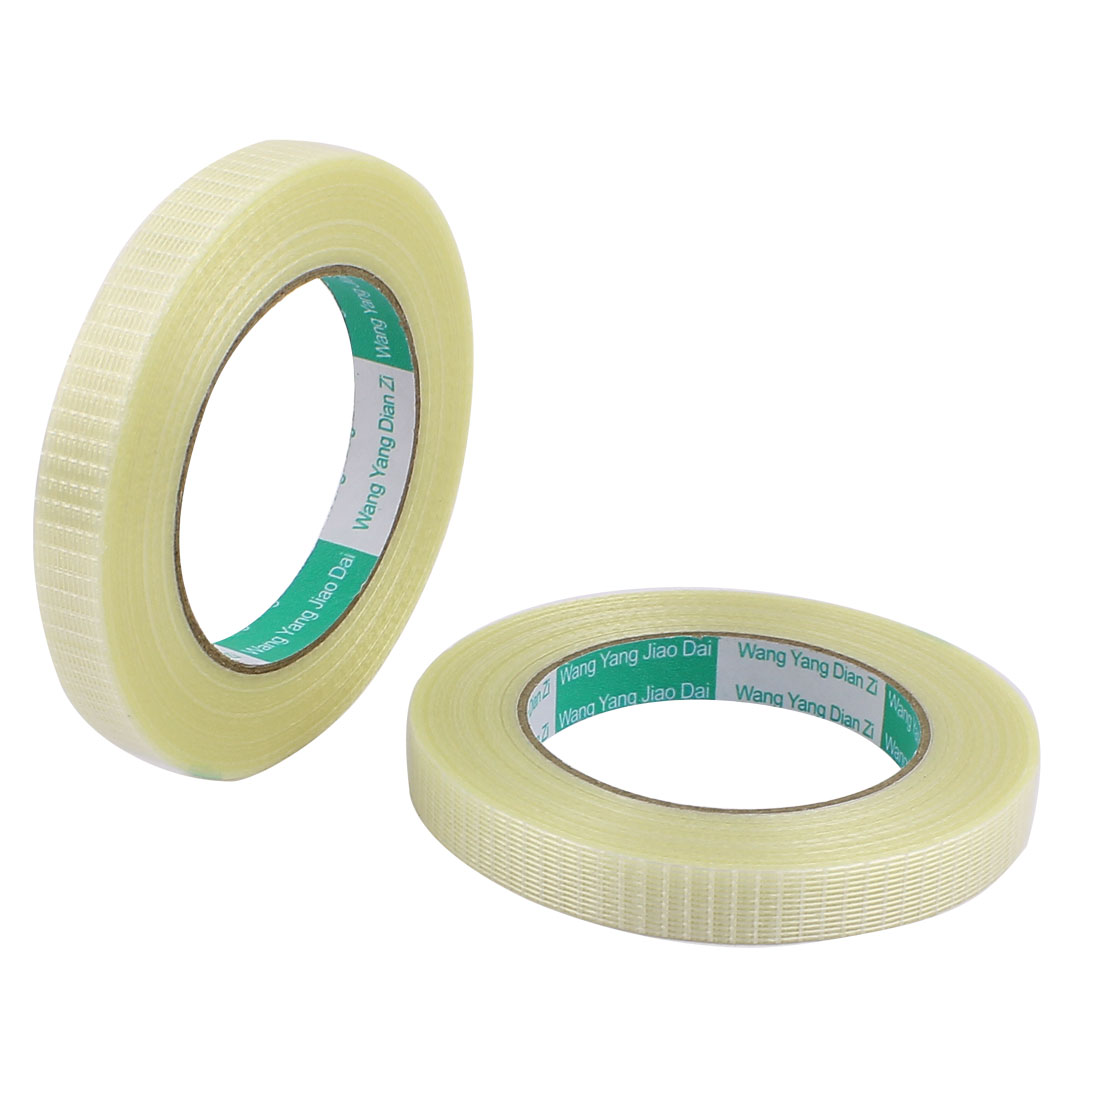 2 Pcs 15mm Height 50M Length Long Adhesive Insulating Grid Glass Fiber Tape Roll